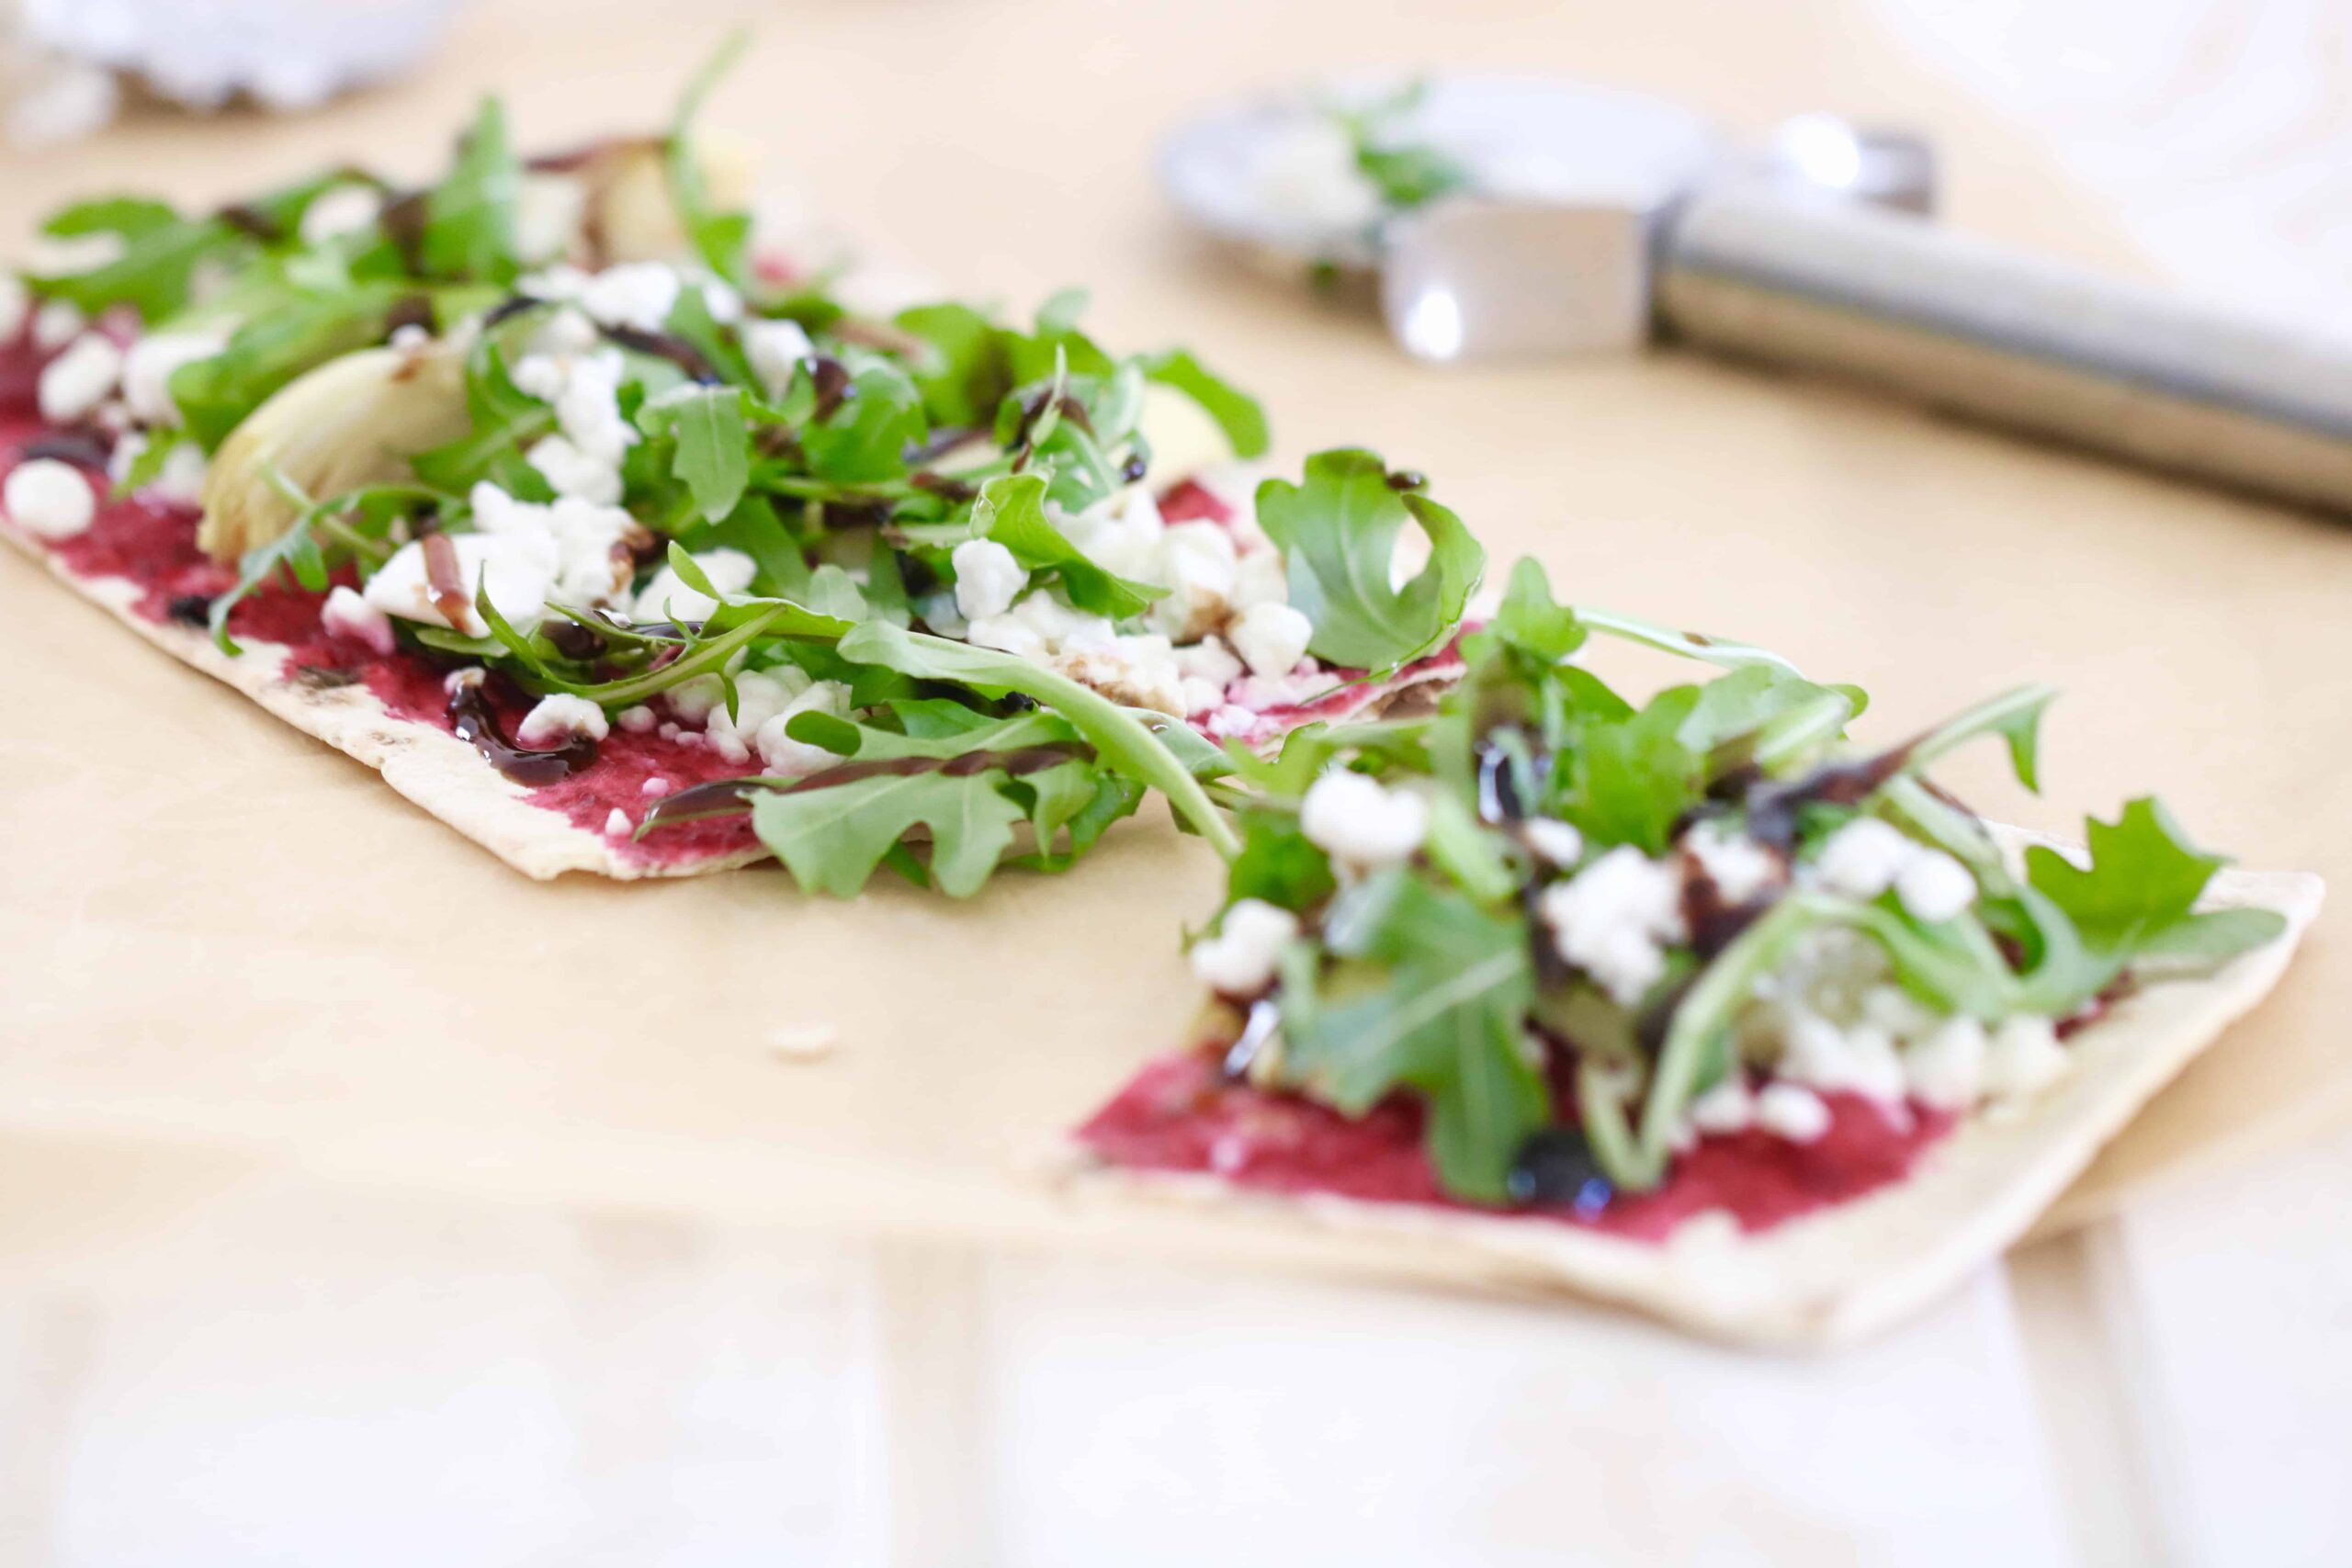 Goat Cheese, Artichoke & Pickled Beet Artisan Pizza @shawsimpleswaps